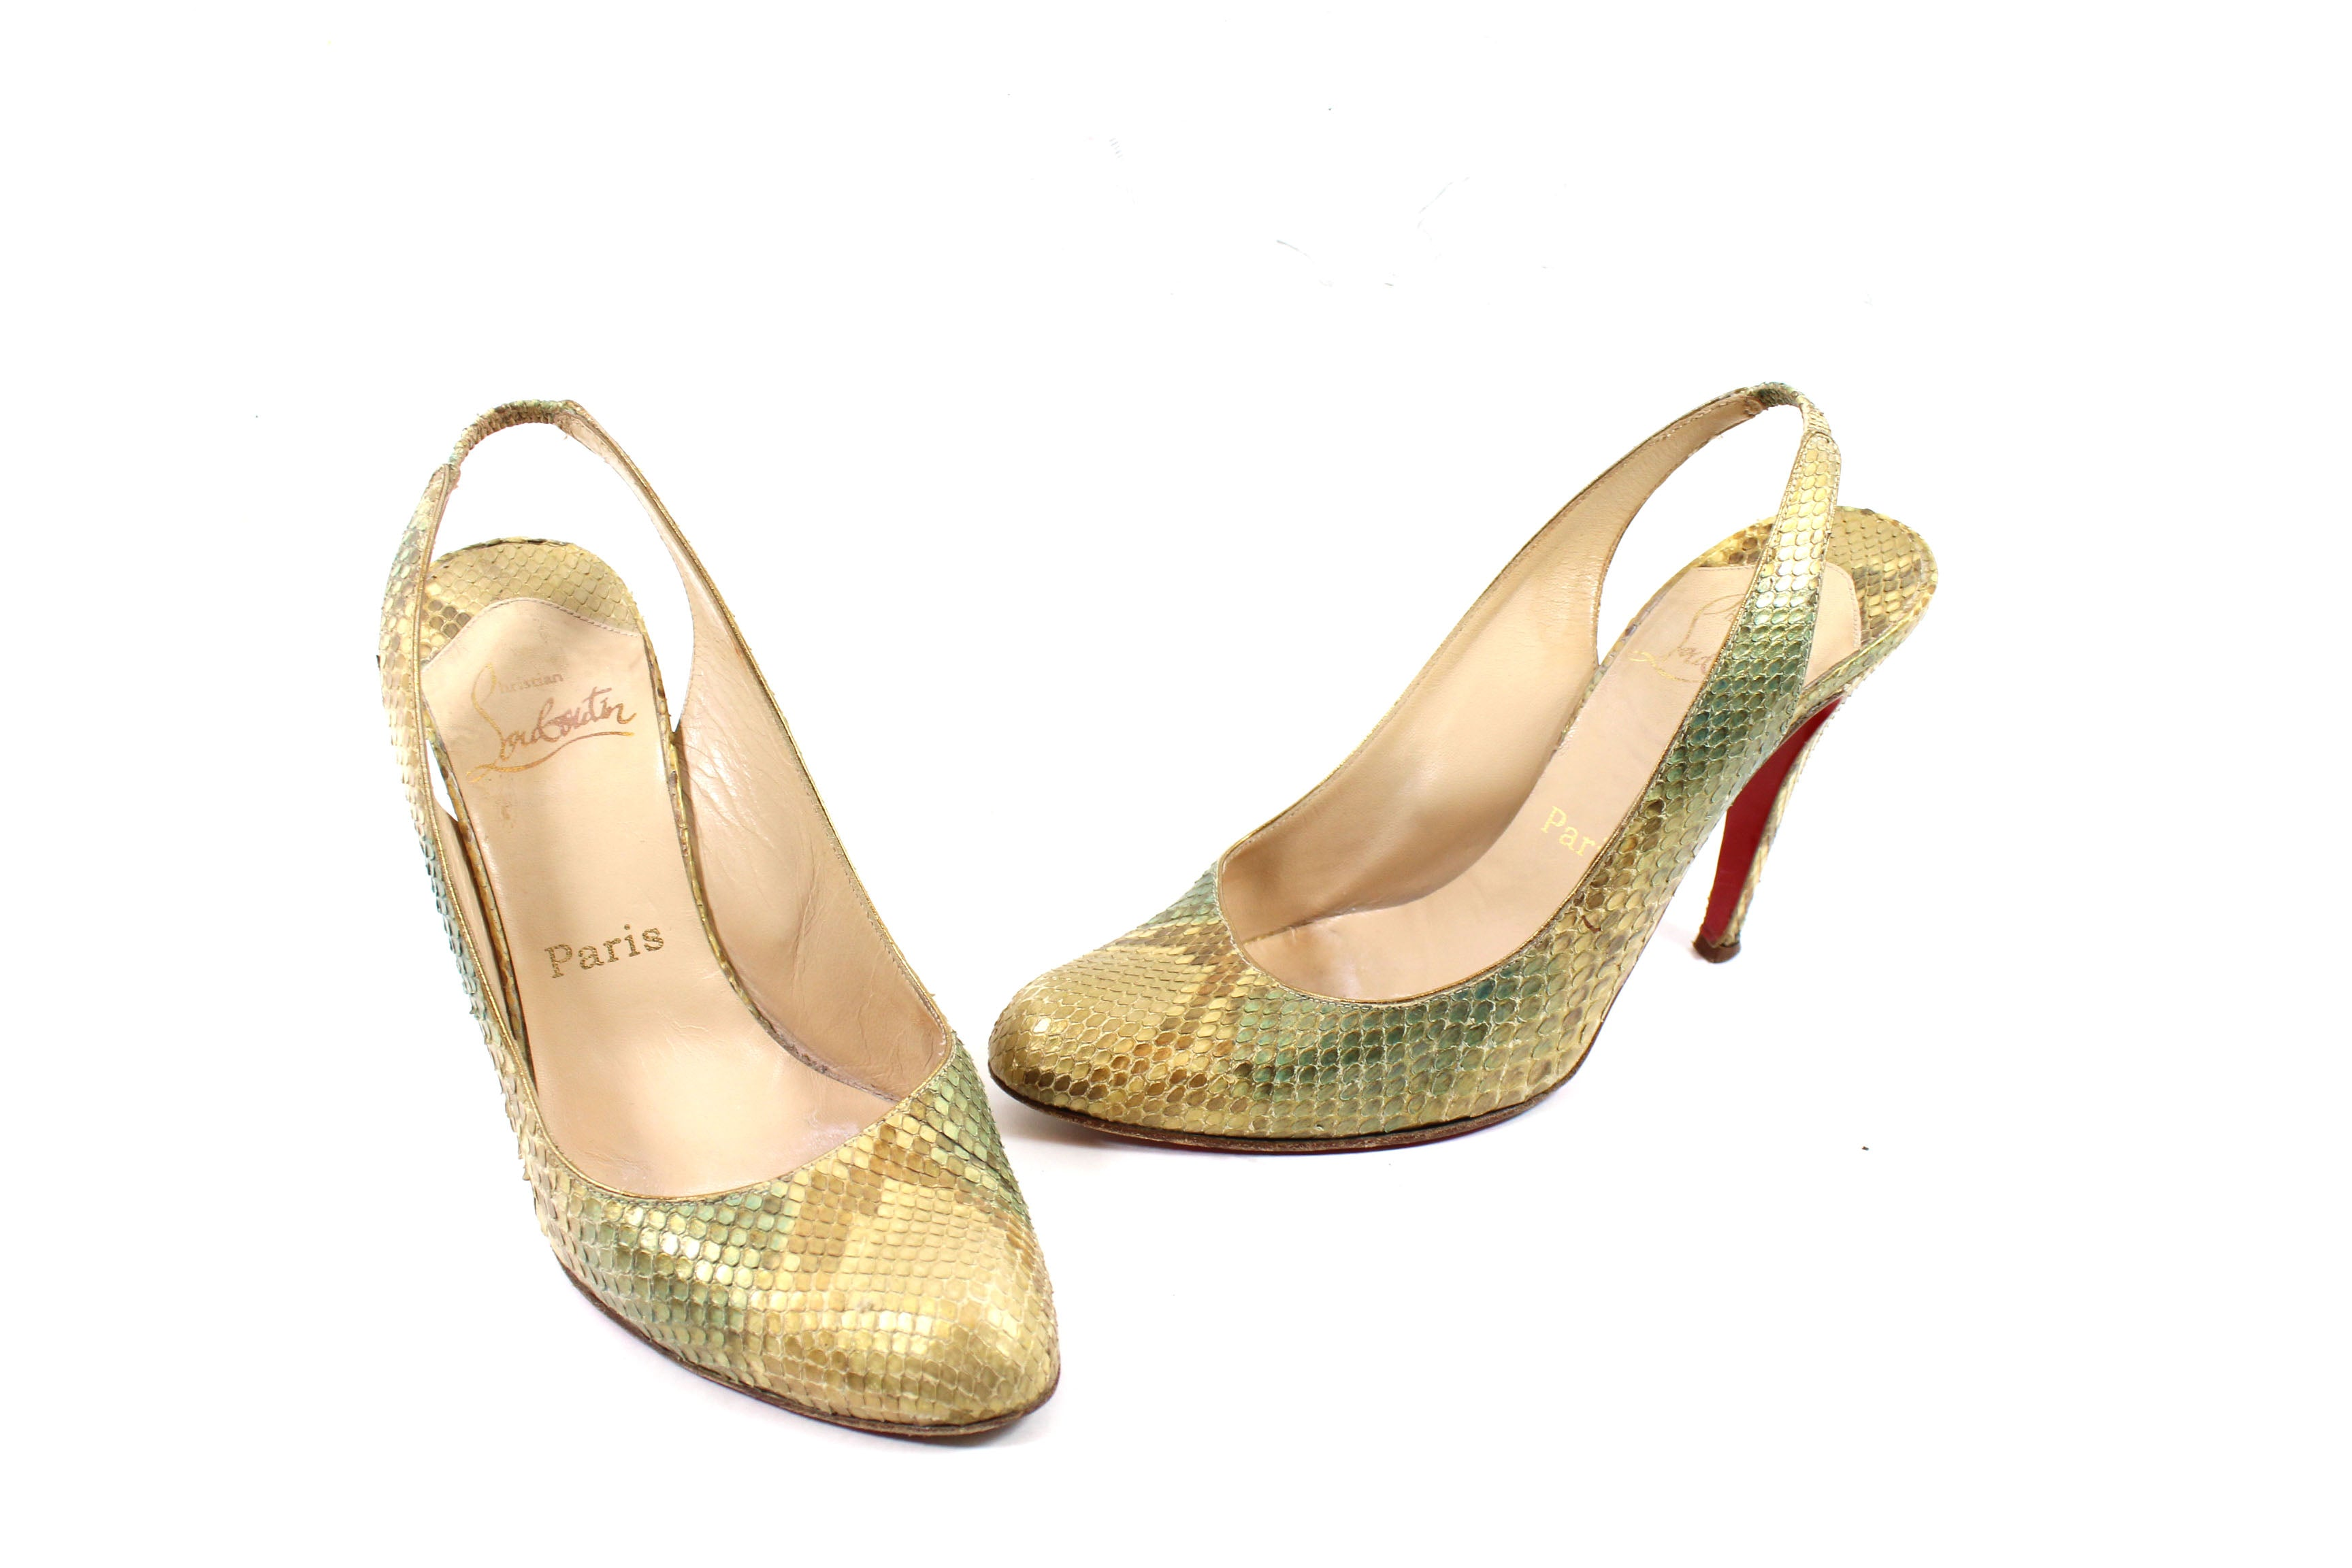 Christian Louboutin Gold-tone/Teal Snakeskin Pumps (Size 37.5)